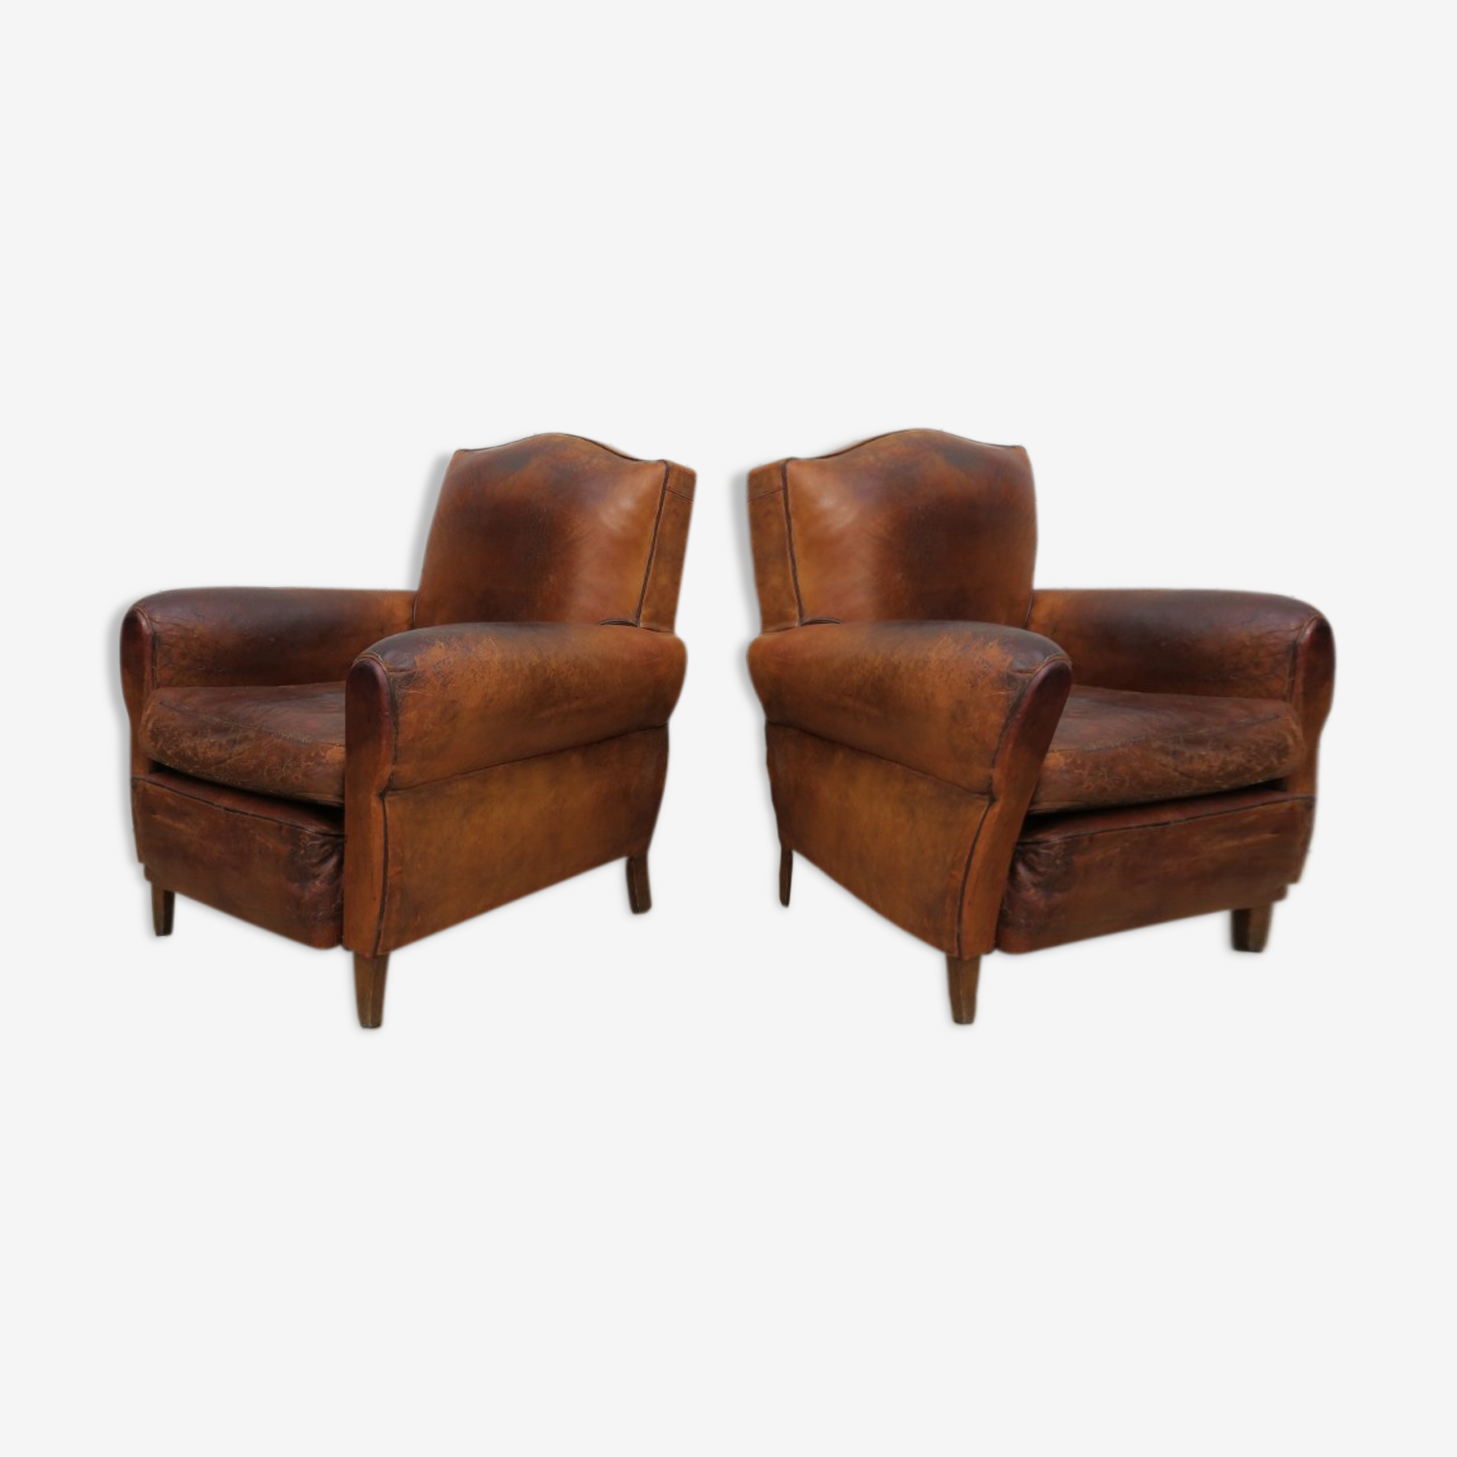 Pair of French leather club armchairs 1930